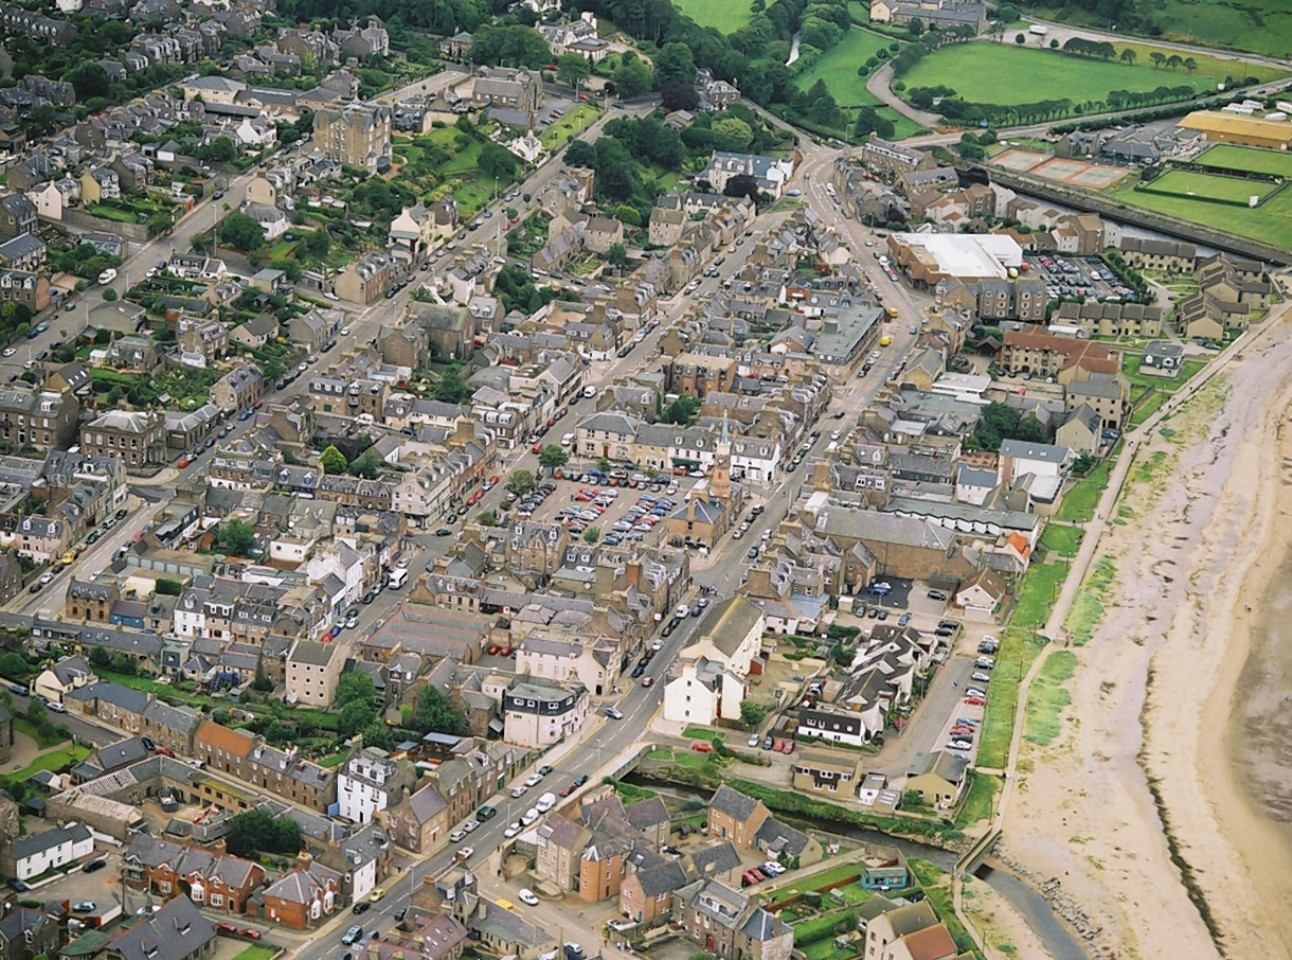 An aerial view of Stonehaven